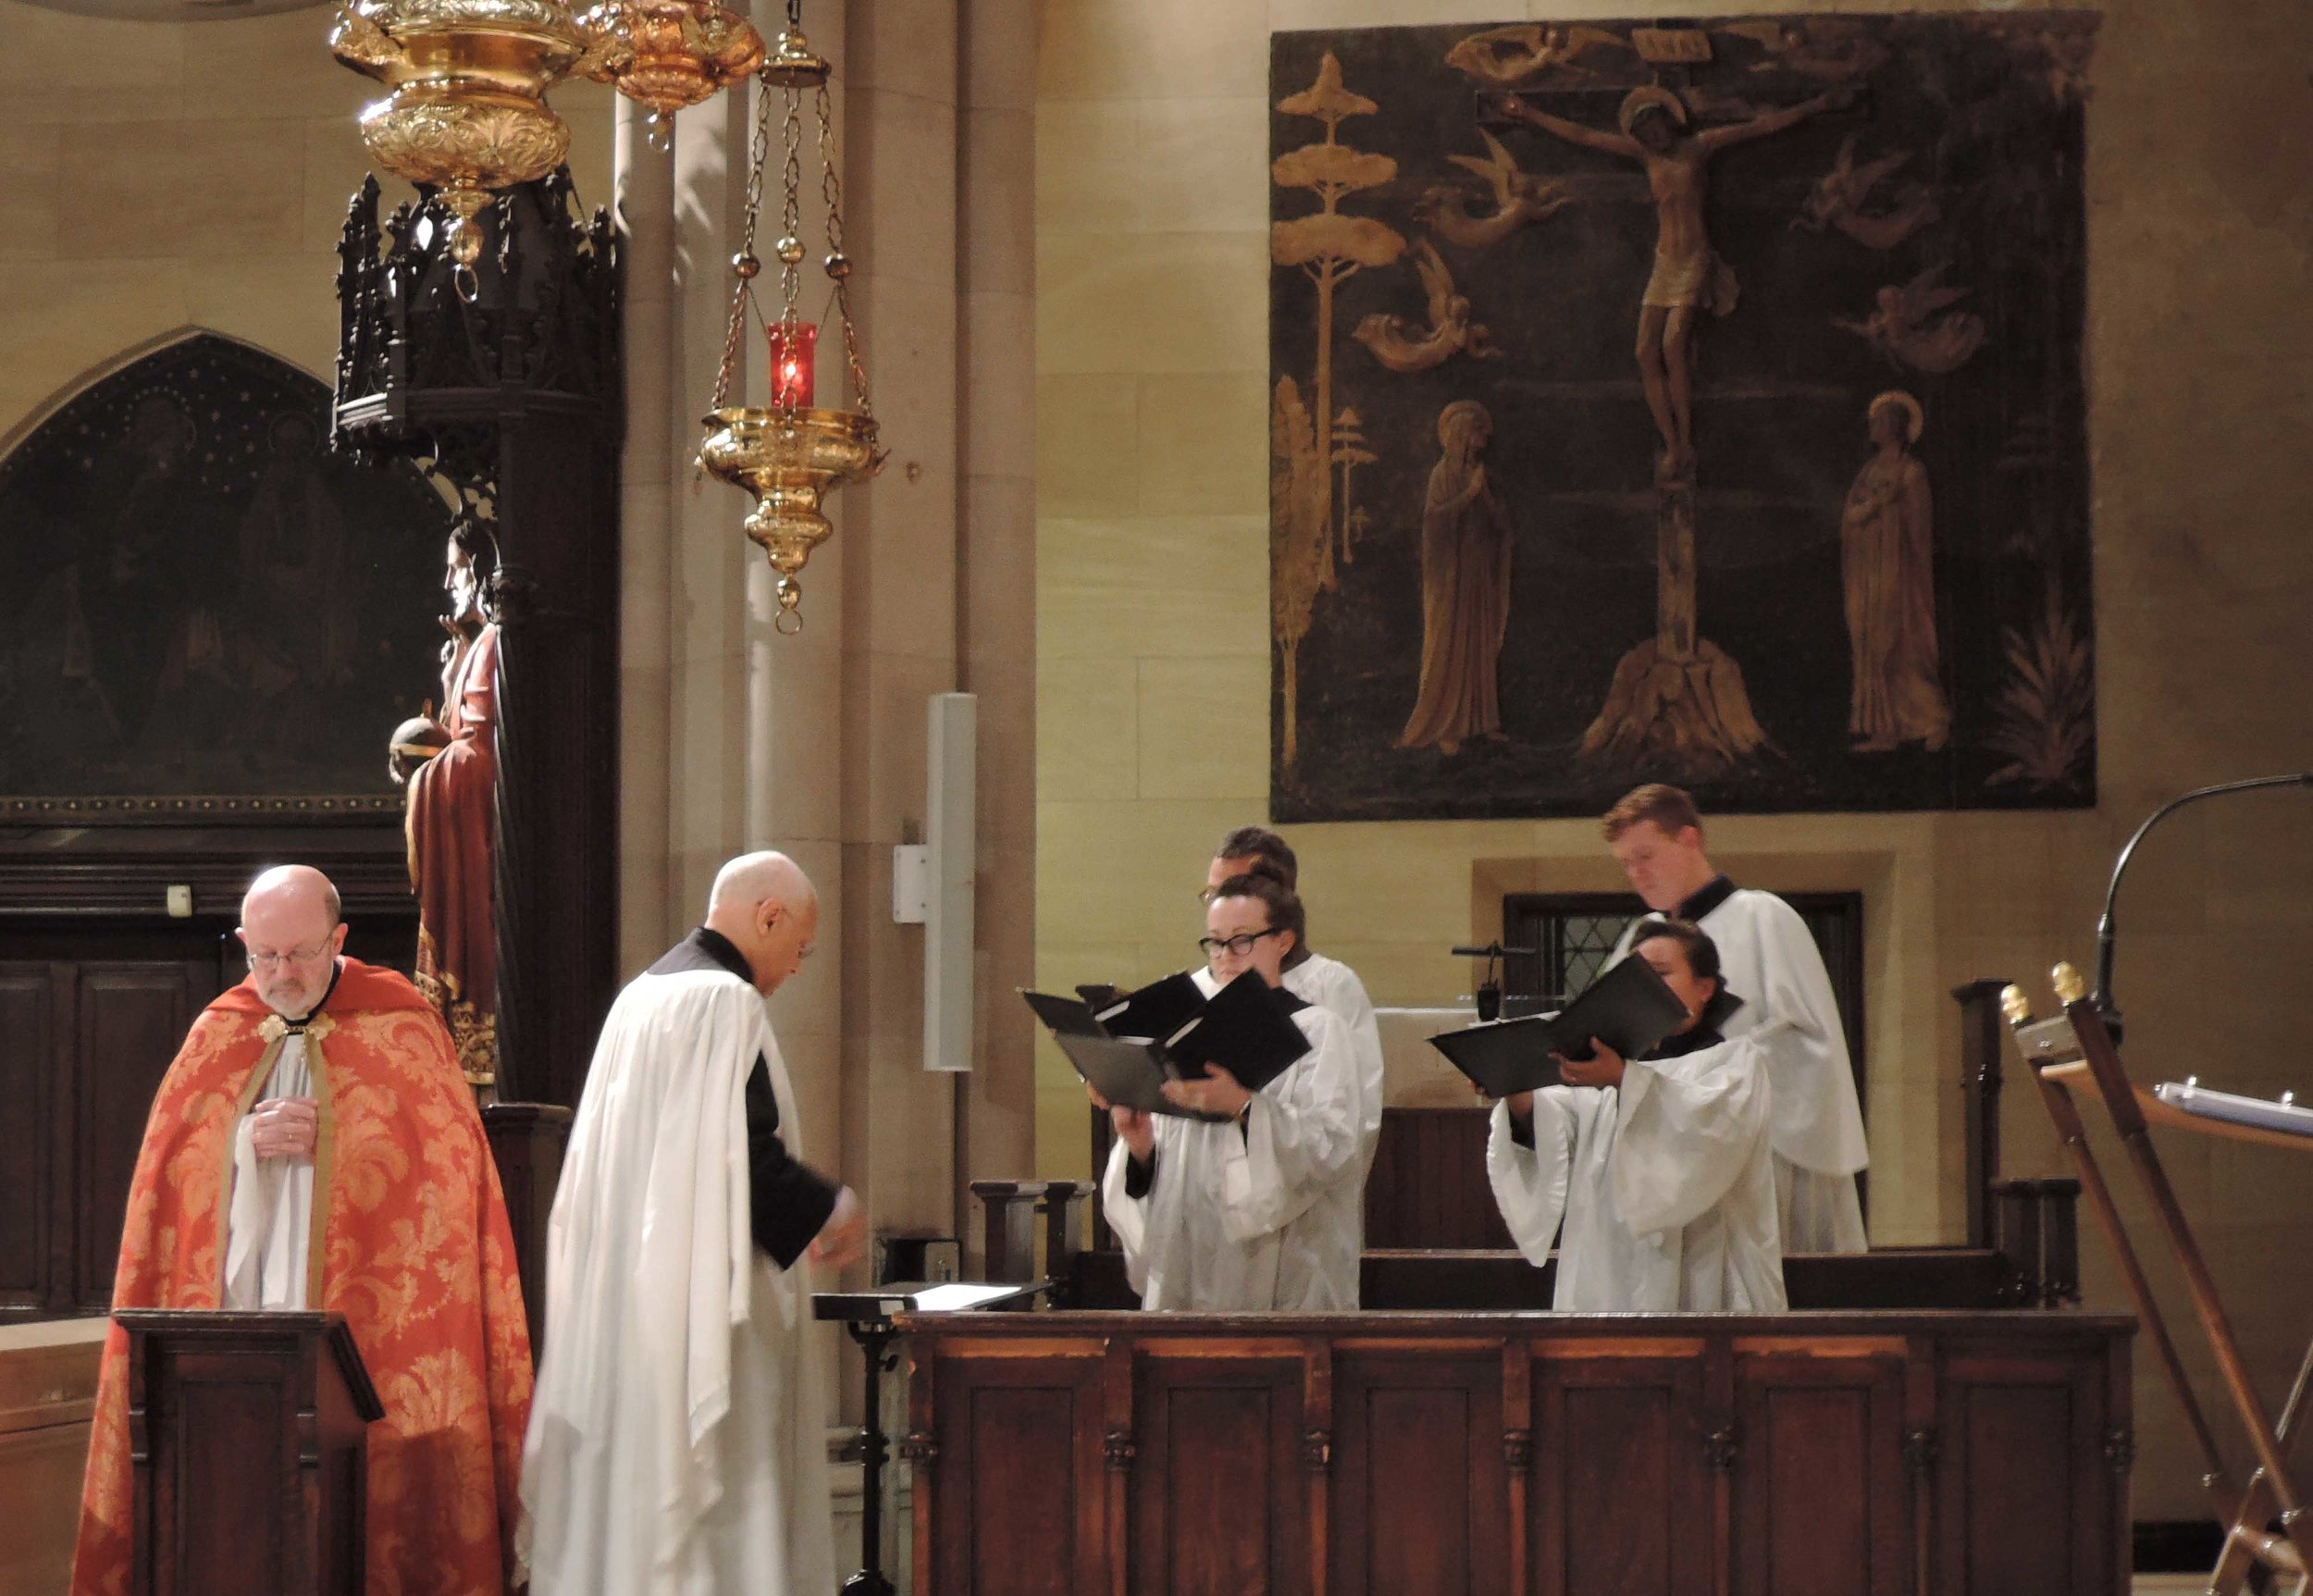 A quartet sang the canticles and a motet at Solemn Evensong on the Eve of Ascension Day.   Photo by Sr. Monica Clare, C.S.J.B.